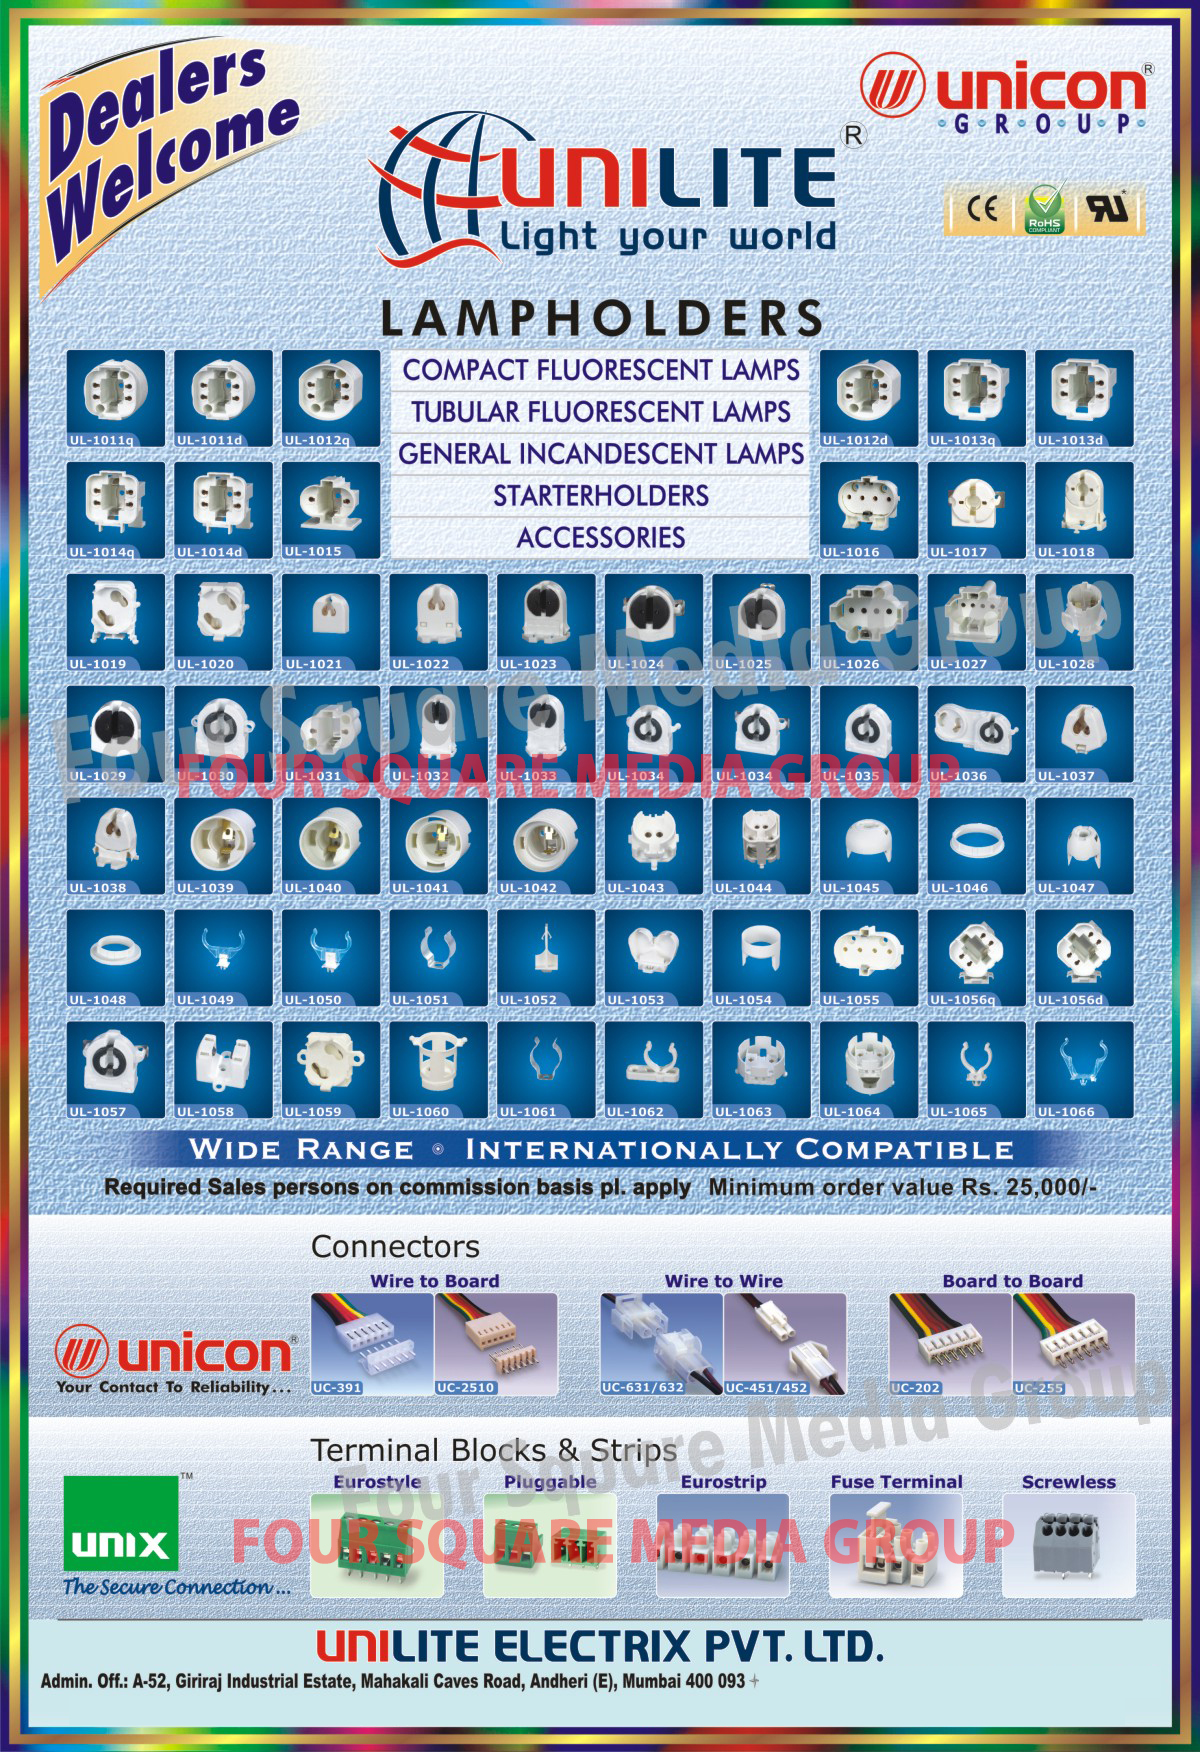 CFL Lamp Holders, Tubular Fluorescent Lamp Holders, General Incandescent Lamp Holders, Starter Holders, Connectors, Terminal Blocks, Terminal Strips, Fuse Terminals, Electrical Accessories,